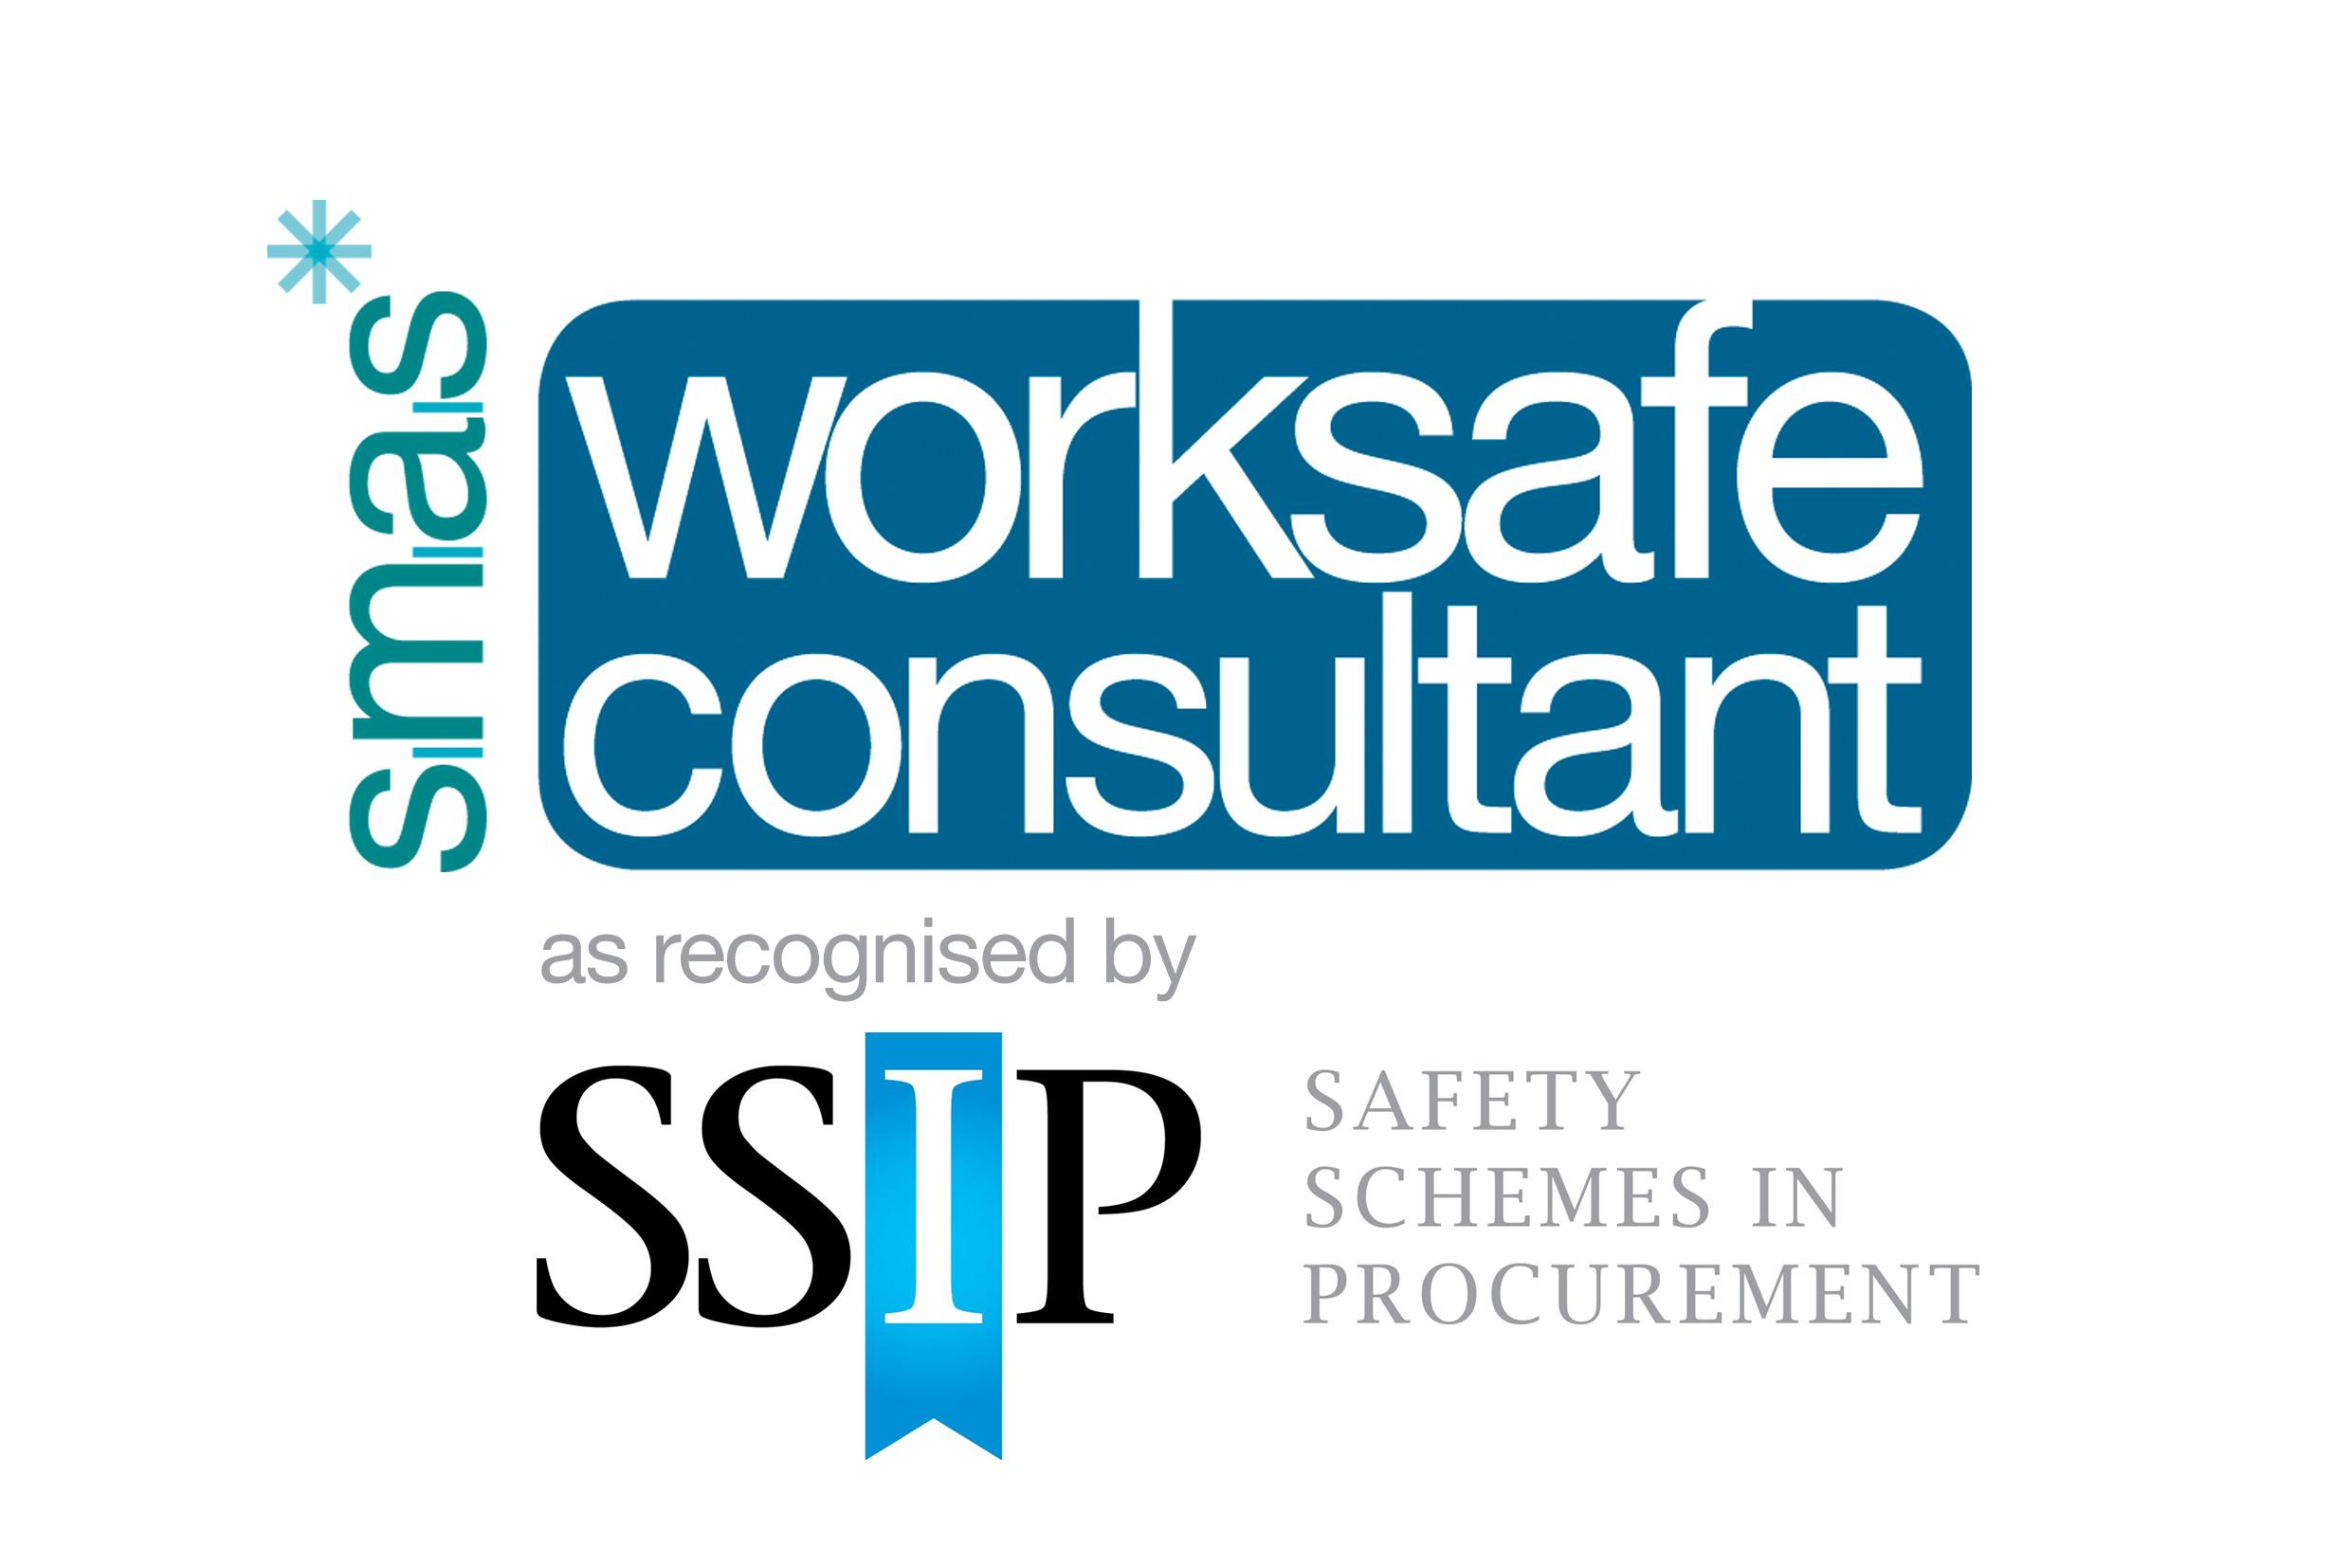 SMAS Worksafe Consultant